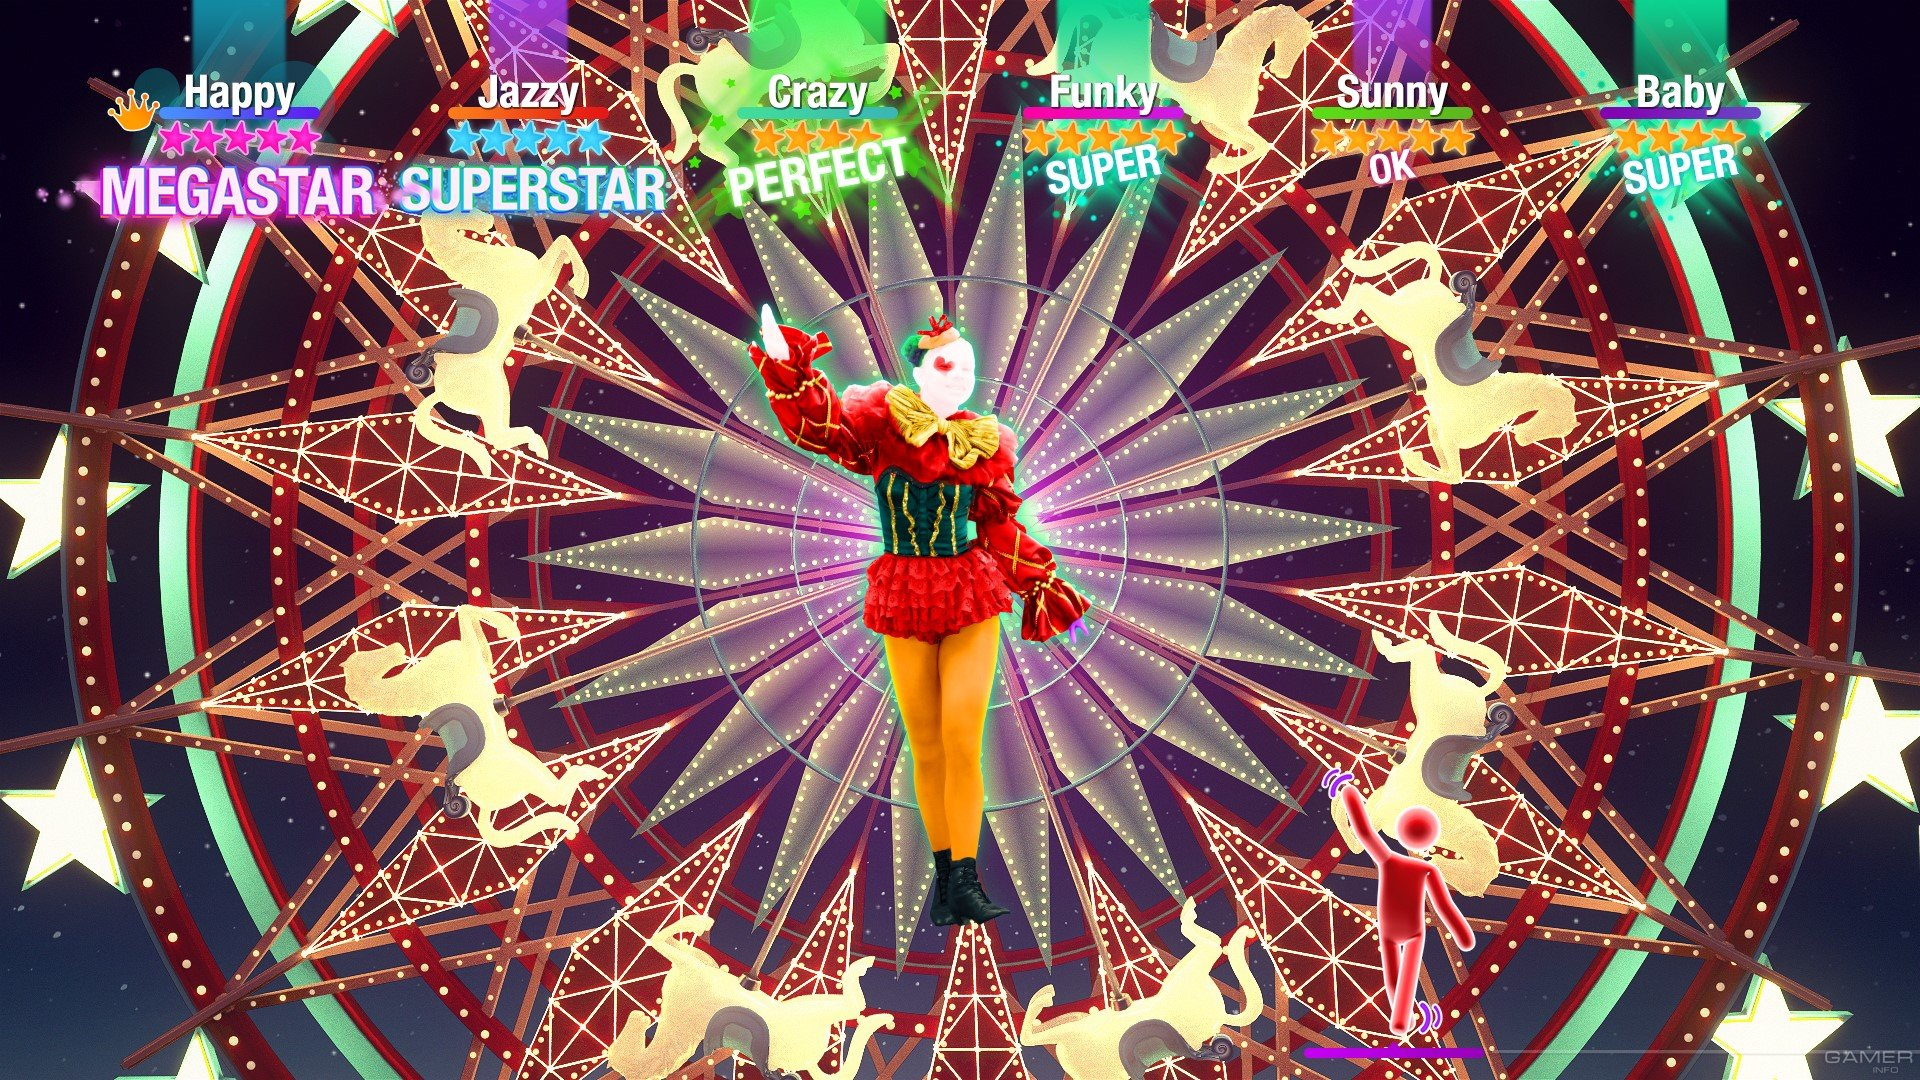 Just Dance 2021 (2020 video game)